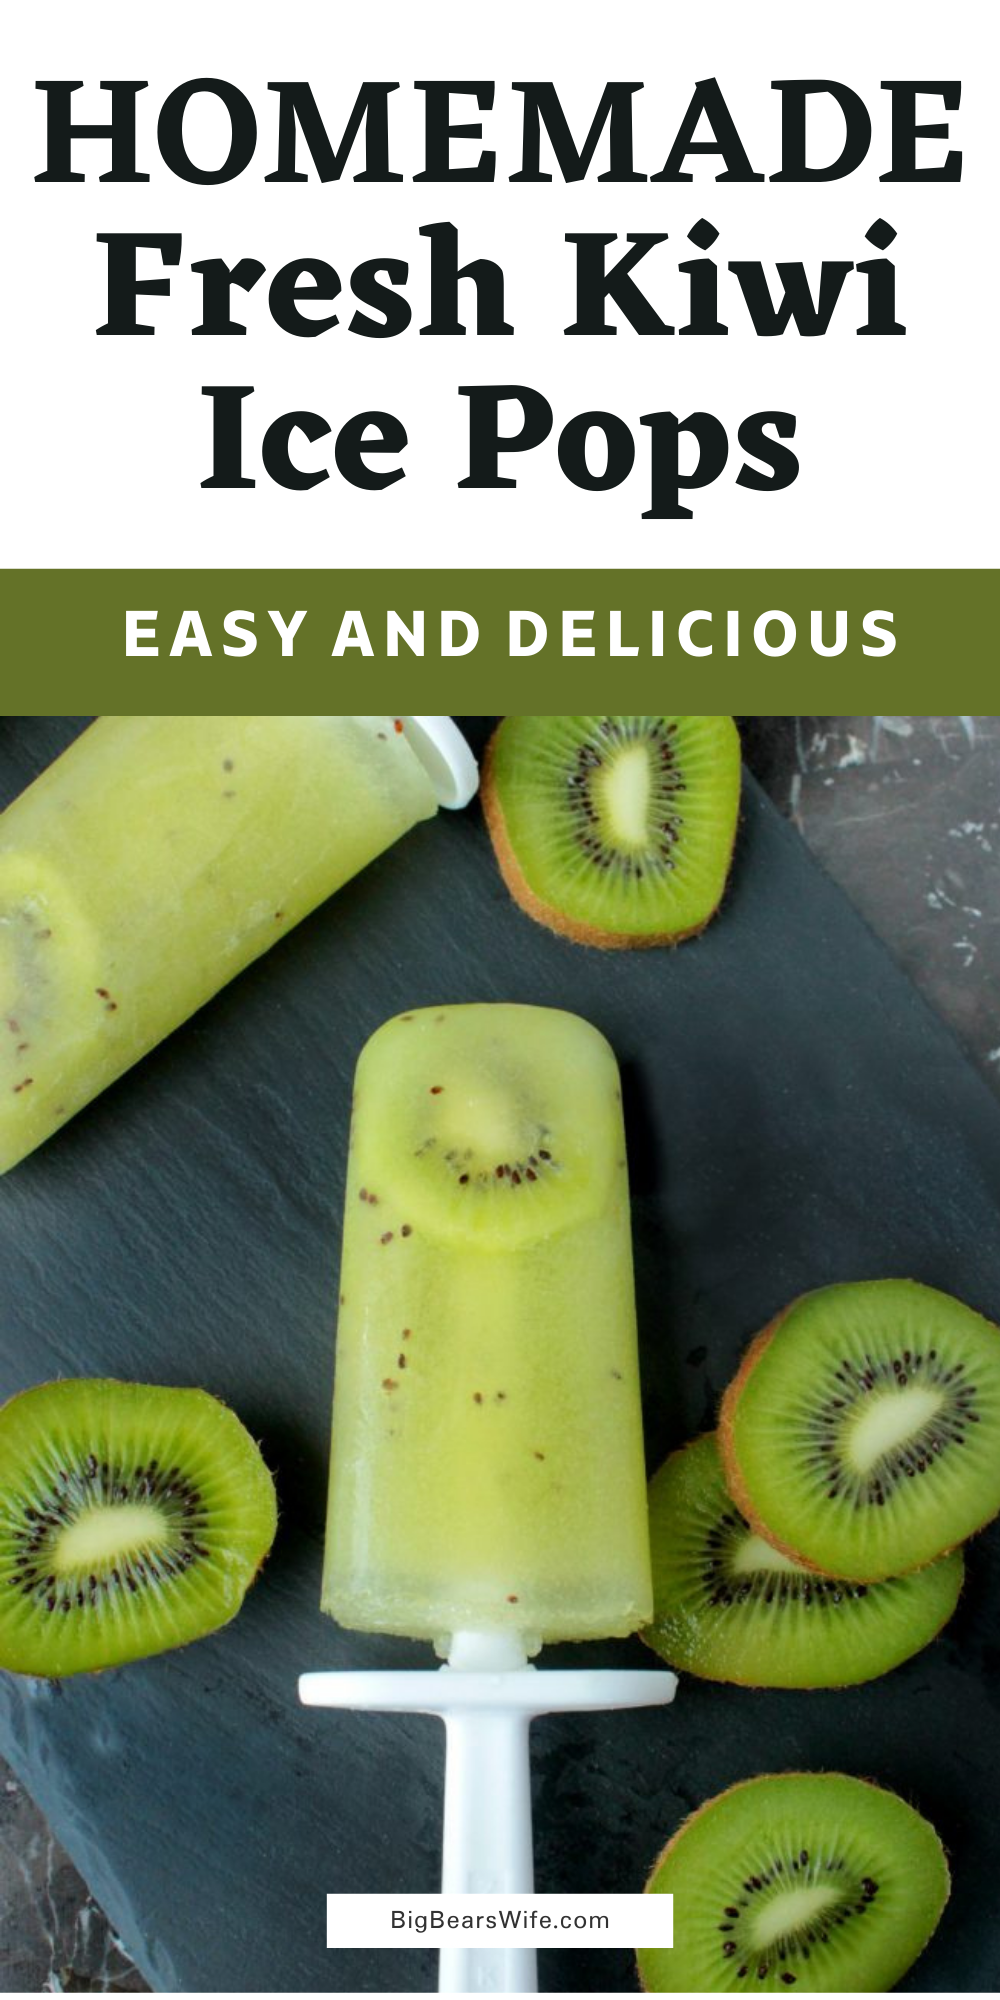 Ready for a super easyfrozen treat to help you cool off this summer? These 3-ingredient FreshKiwi Ice Pops are made with fresh kiwis and sweetened with just a touch of sugar. via @bigbearswife